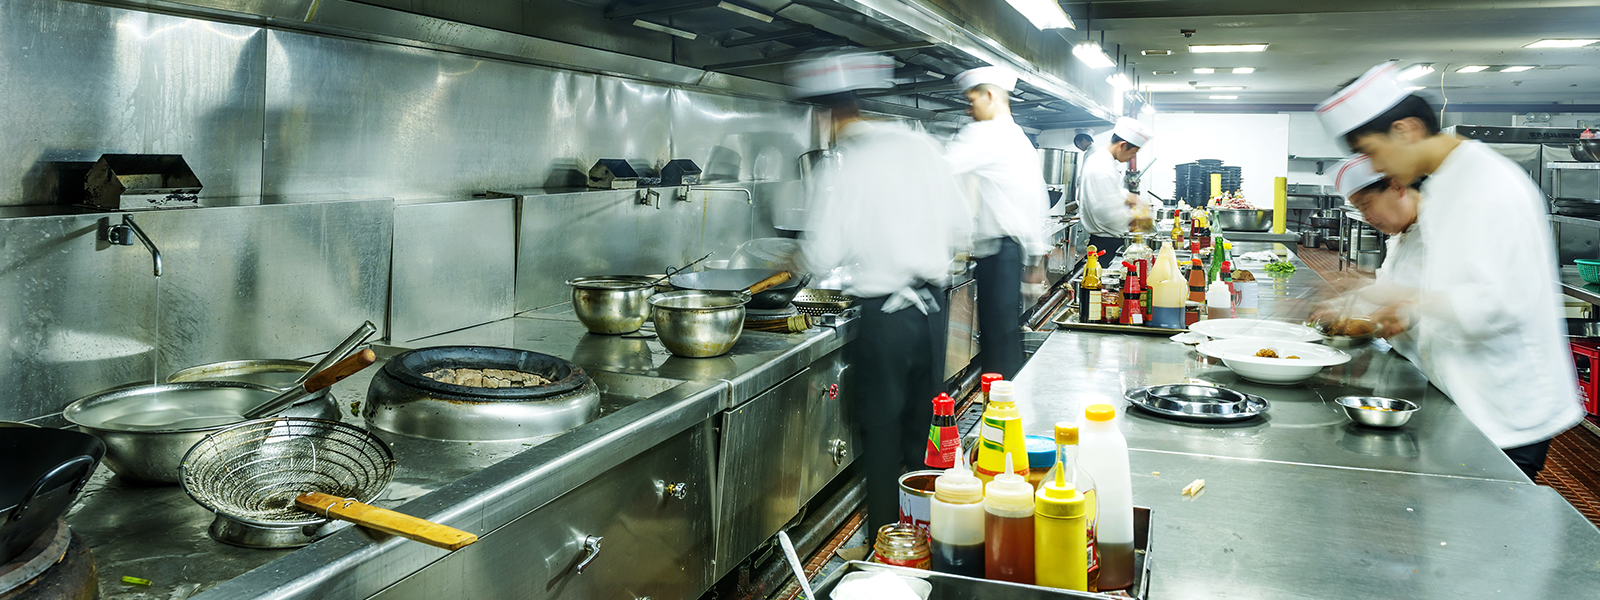 industrial kitchen, with chefs making food